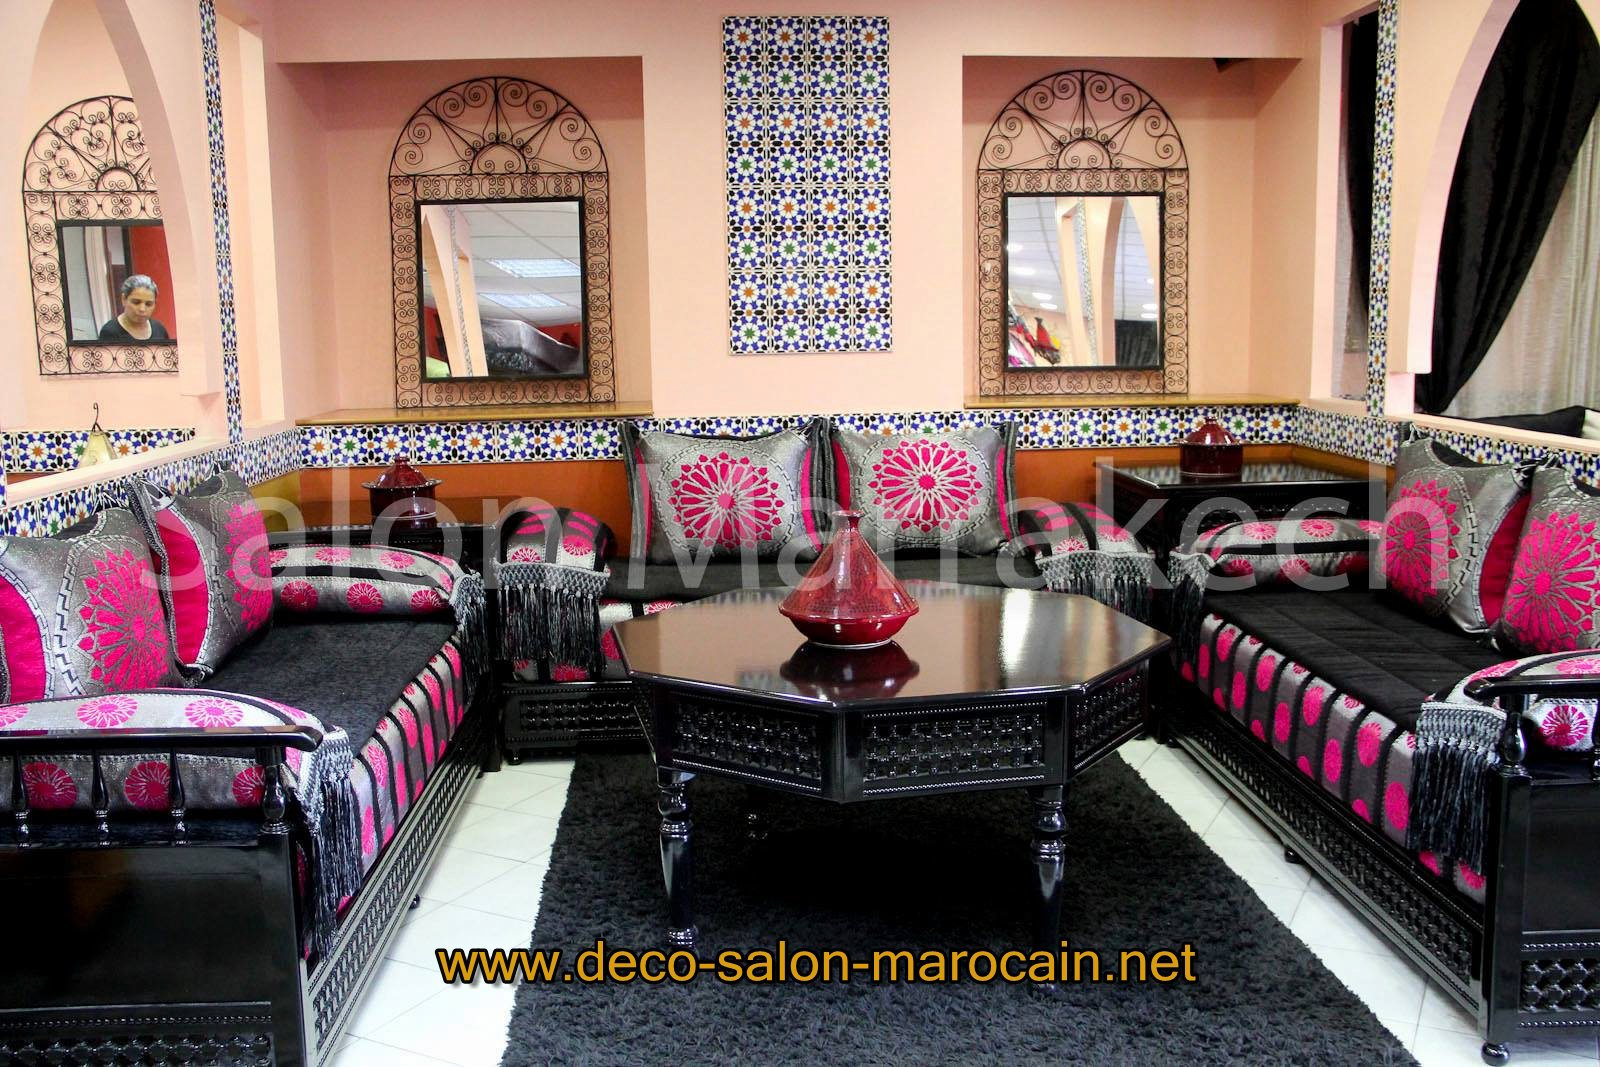 Les salons marocain de 2015 holidays oo for Photo salon moderne